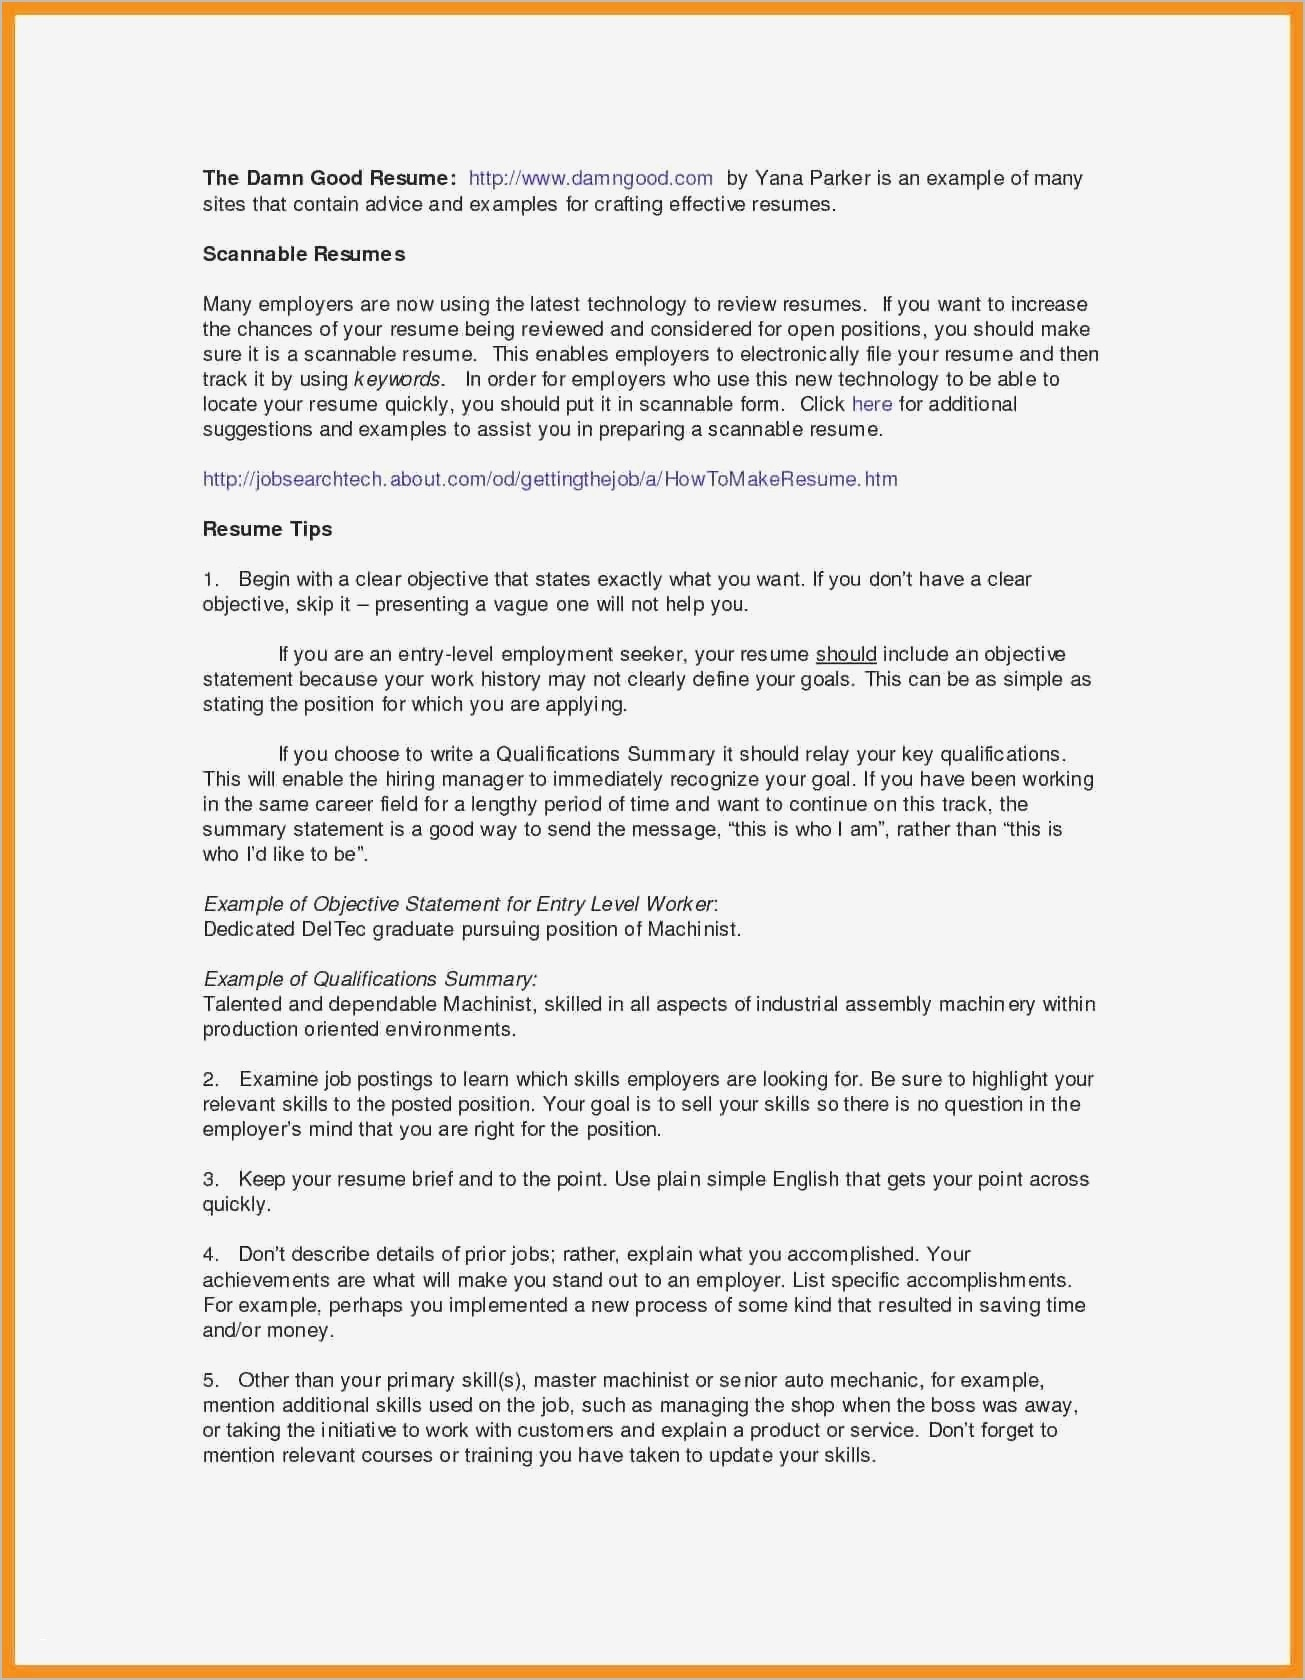 Graphic Design Resume Objective - Resume Mission Statement Examples Beautiful Resume Objective